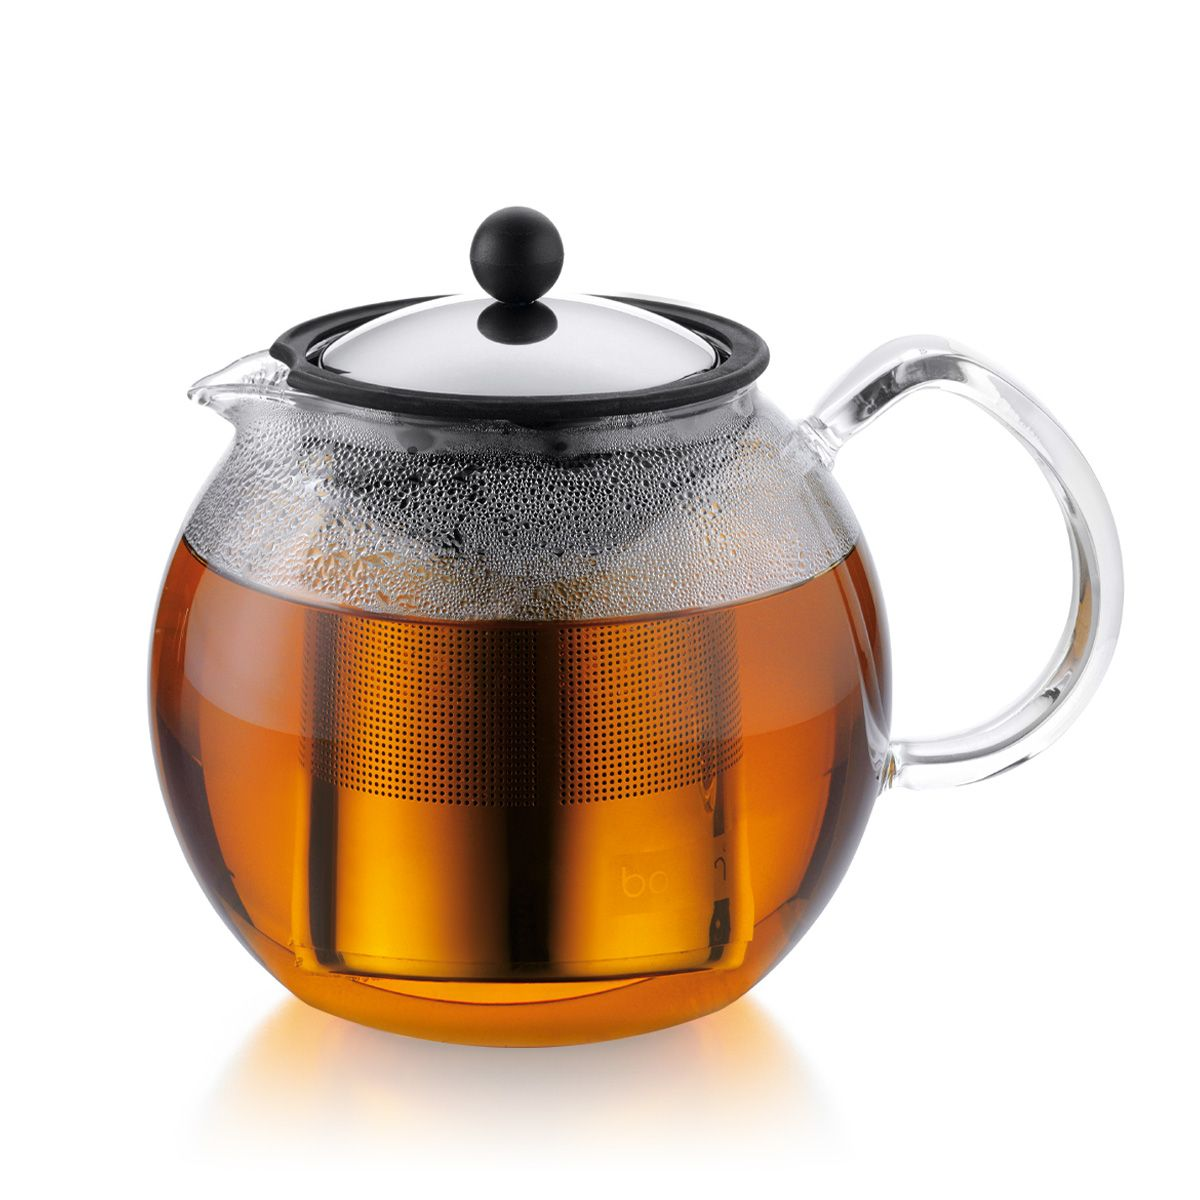 Teapot with Infuser Stainless Steel ASSAM 1.5 L